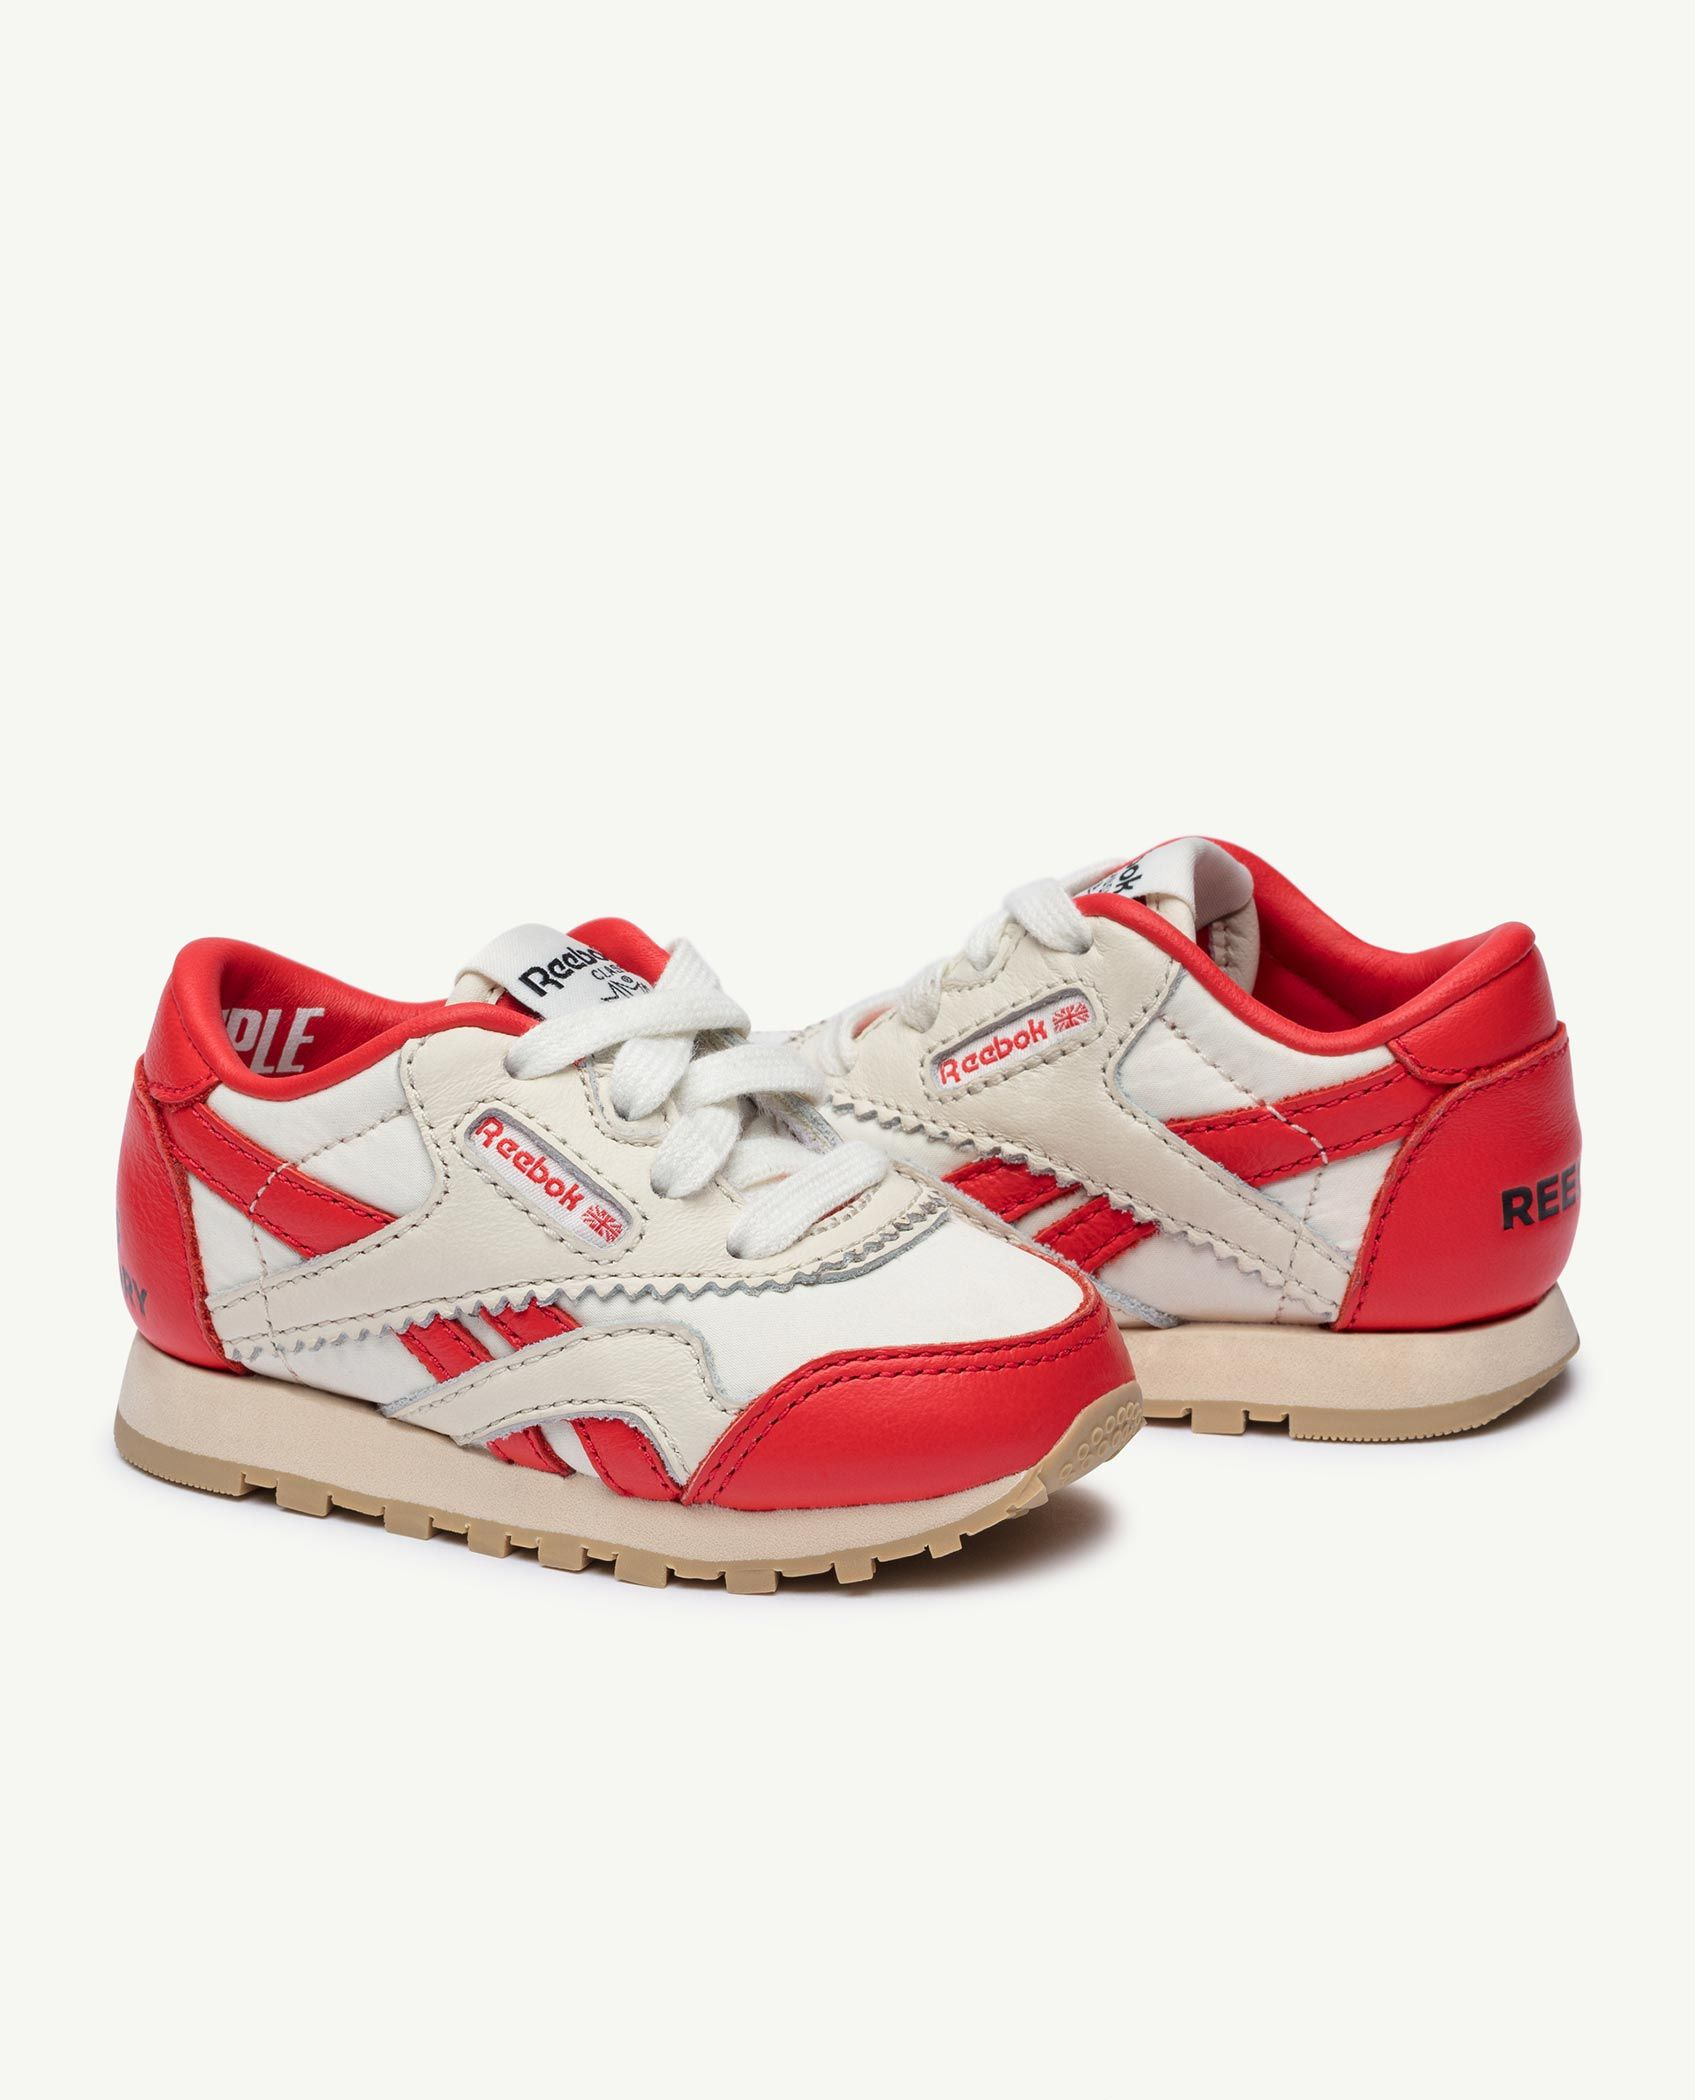 Reebok x The Animals Observatory Classic Nylon Red Baby img-3